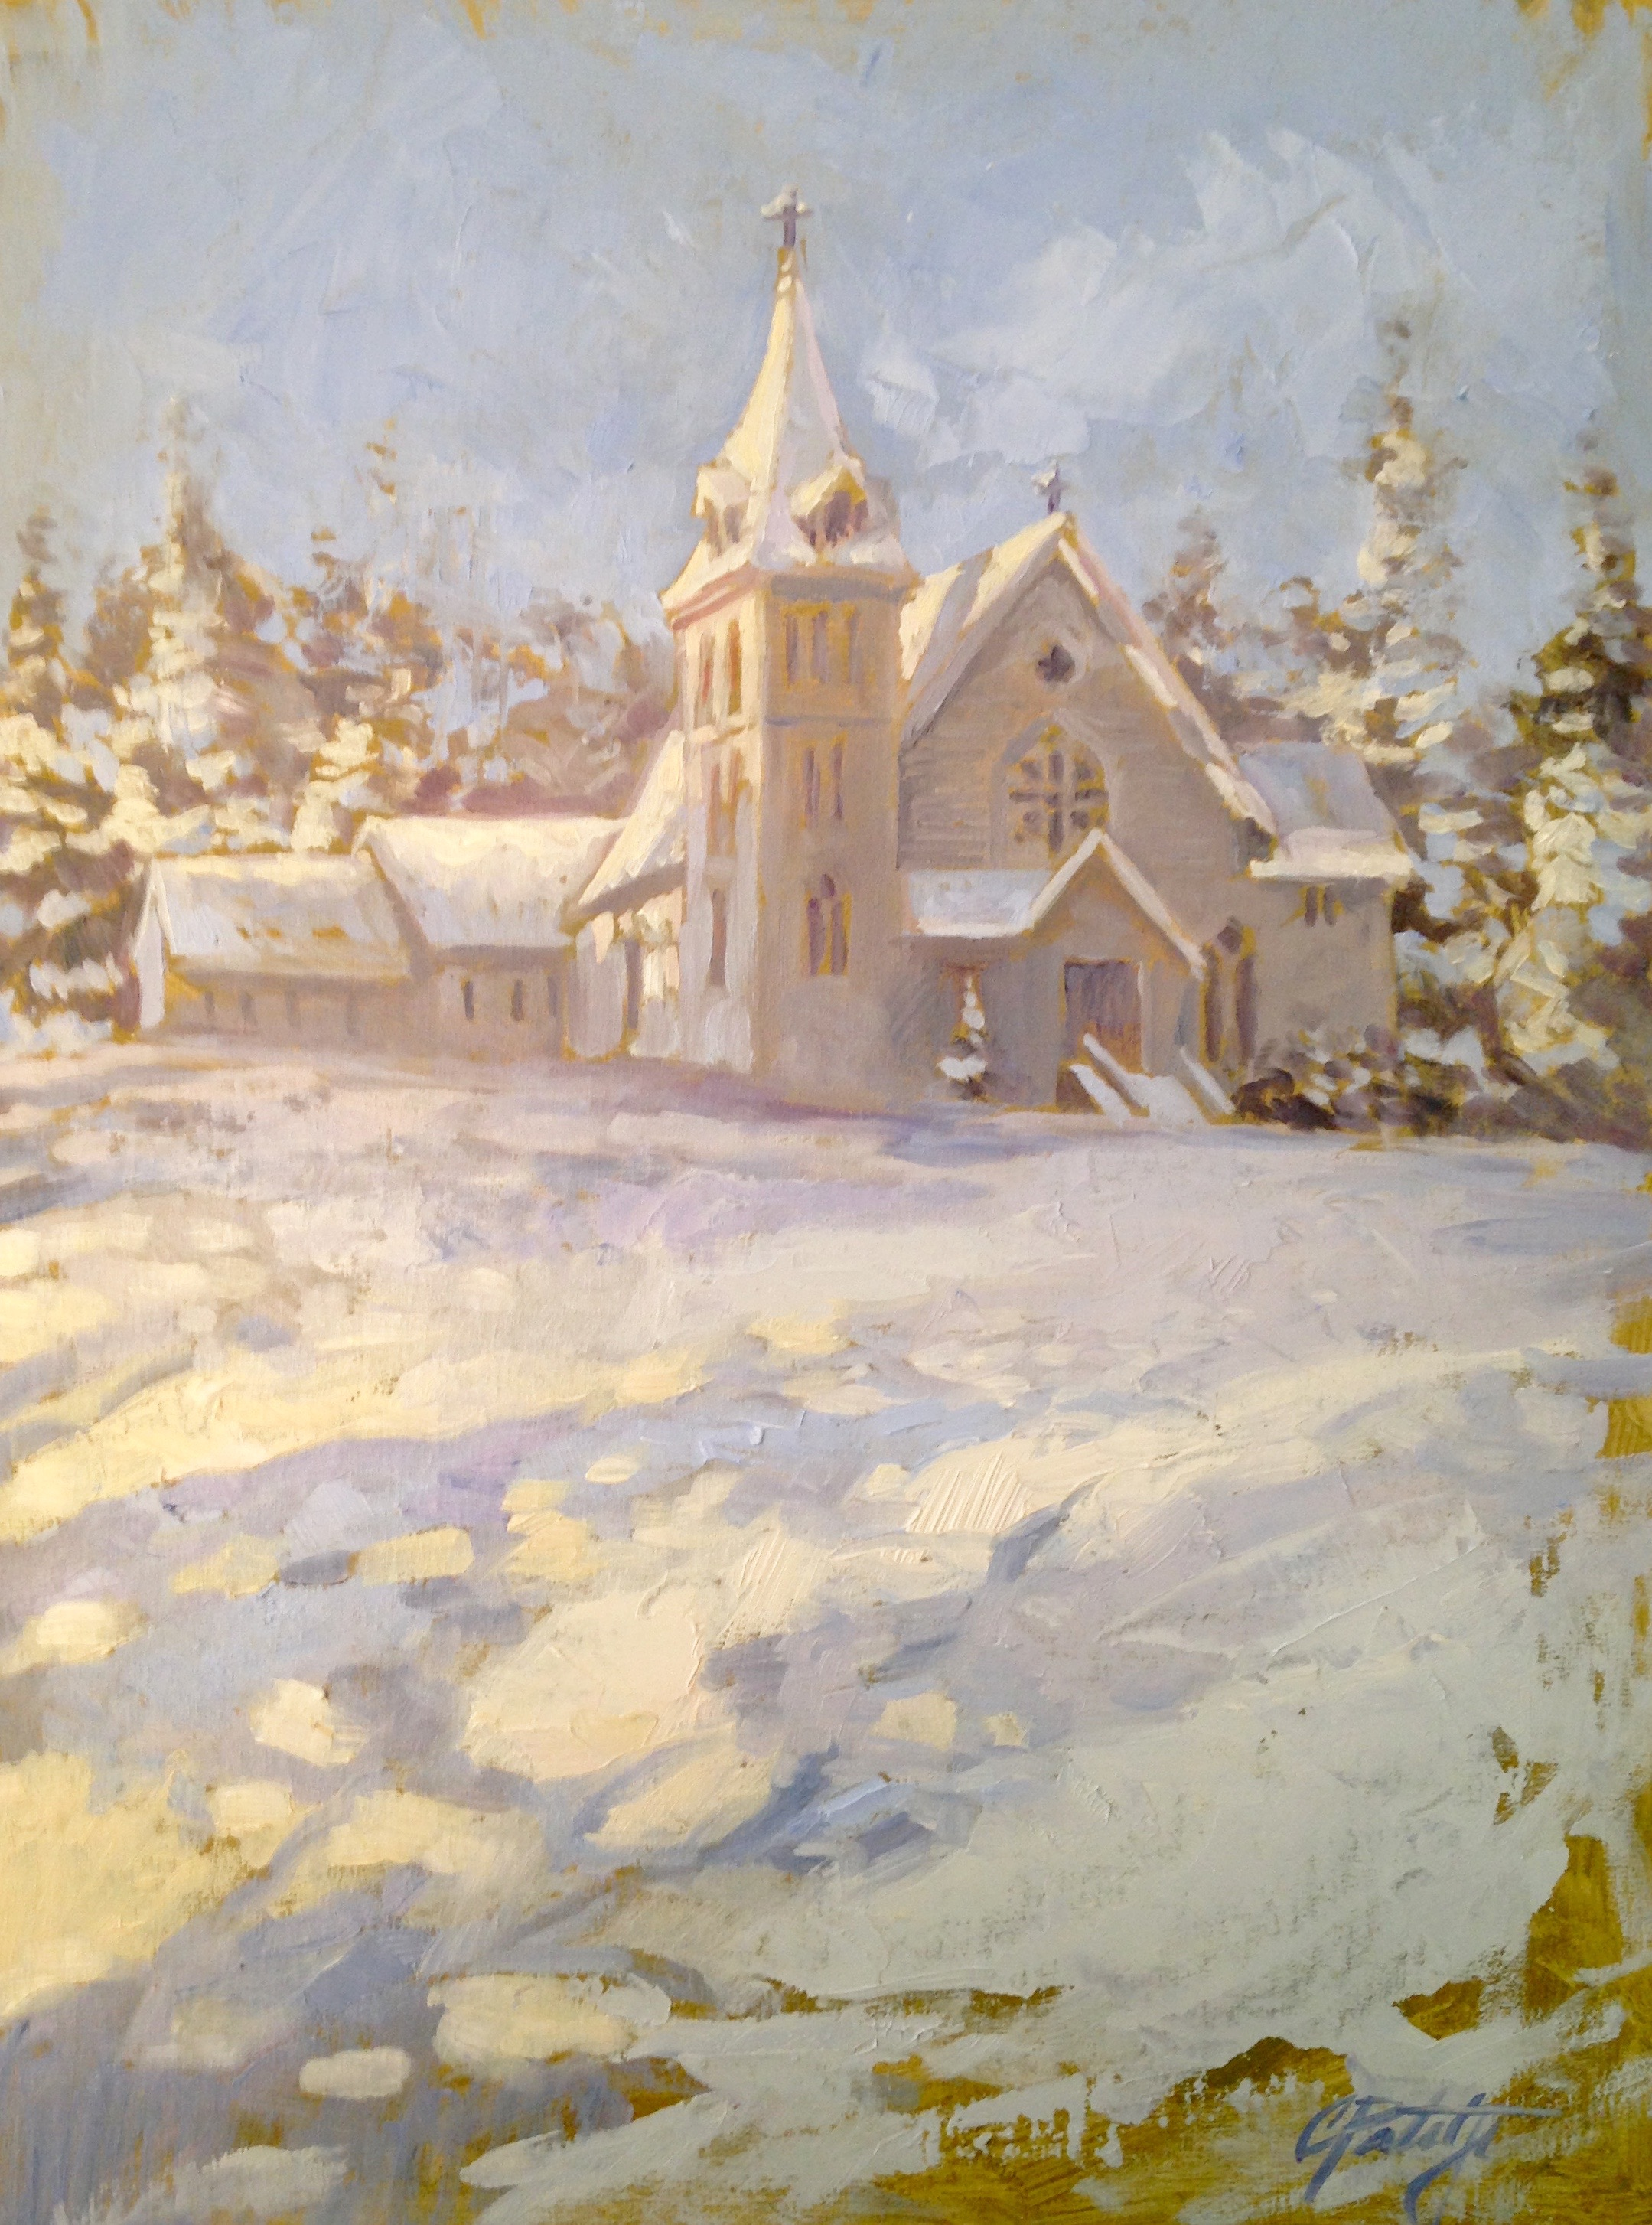 Impressionist style painting of church in snow. Oil painting by Charles Pate Jr in Greenville SC